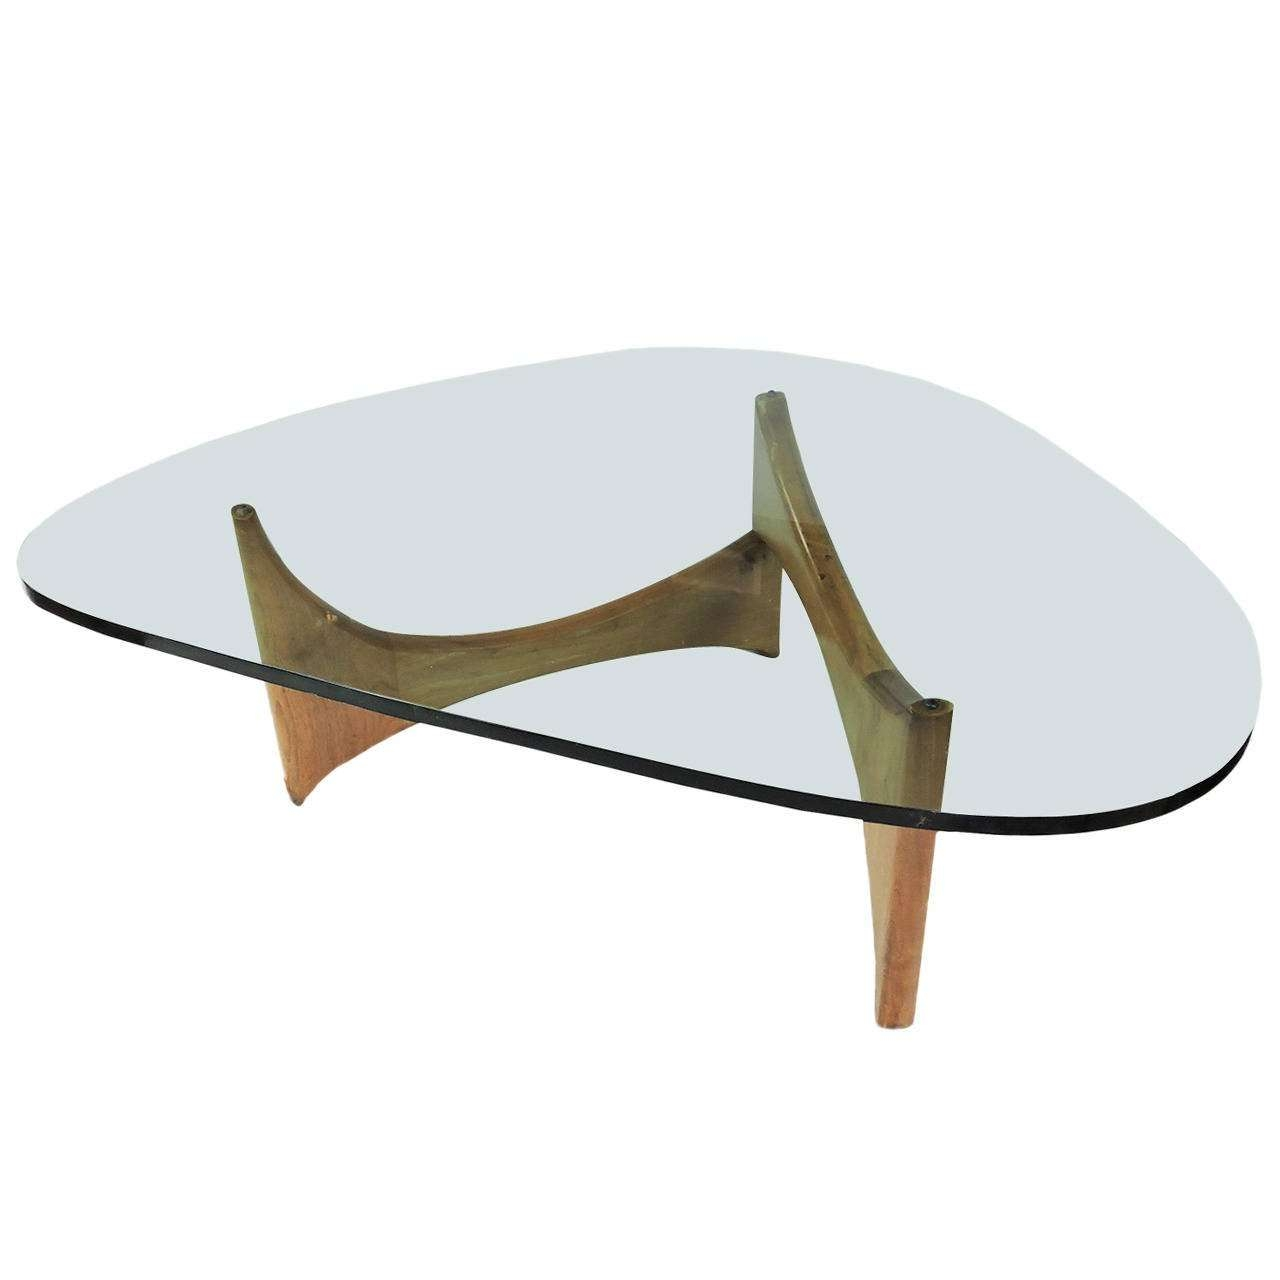 Mid Century Modern Glass And Wood Coffee Table At 1Stdibs With Regard To 2018 Modern Glass Coffee Tables (View 12 of 20)